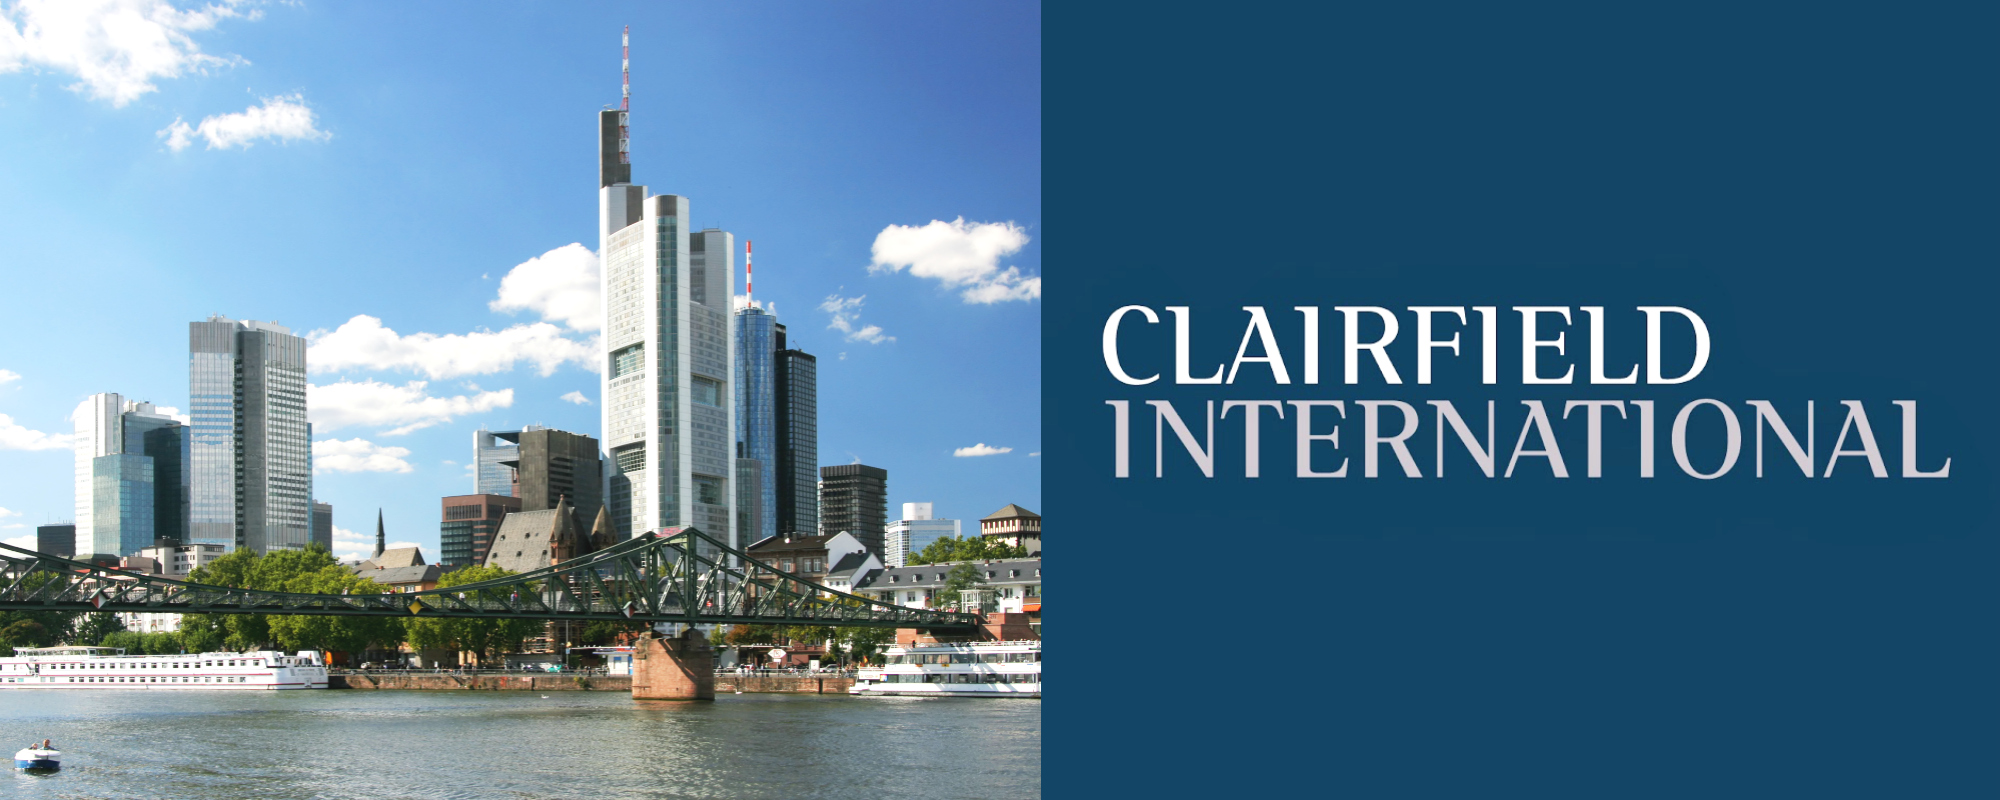 clairfield international Most Powerful M&A Firms in the world best upslide